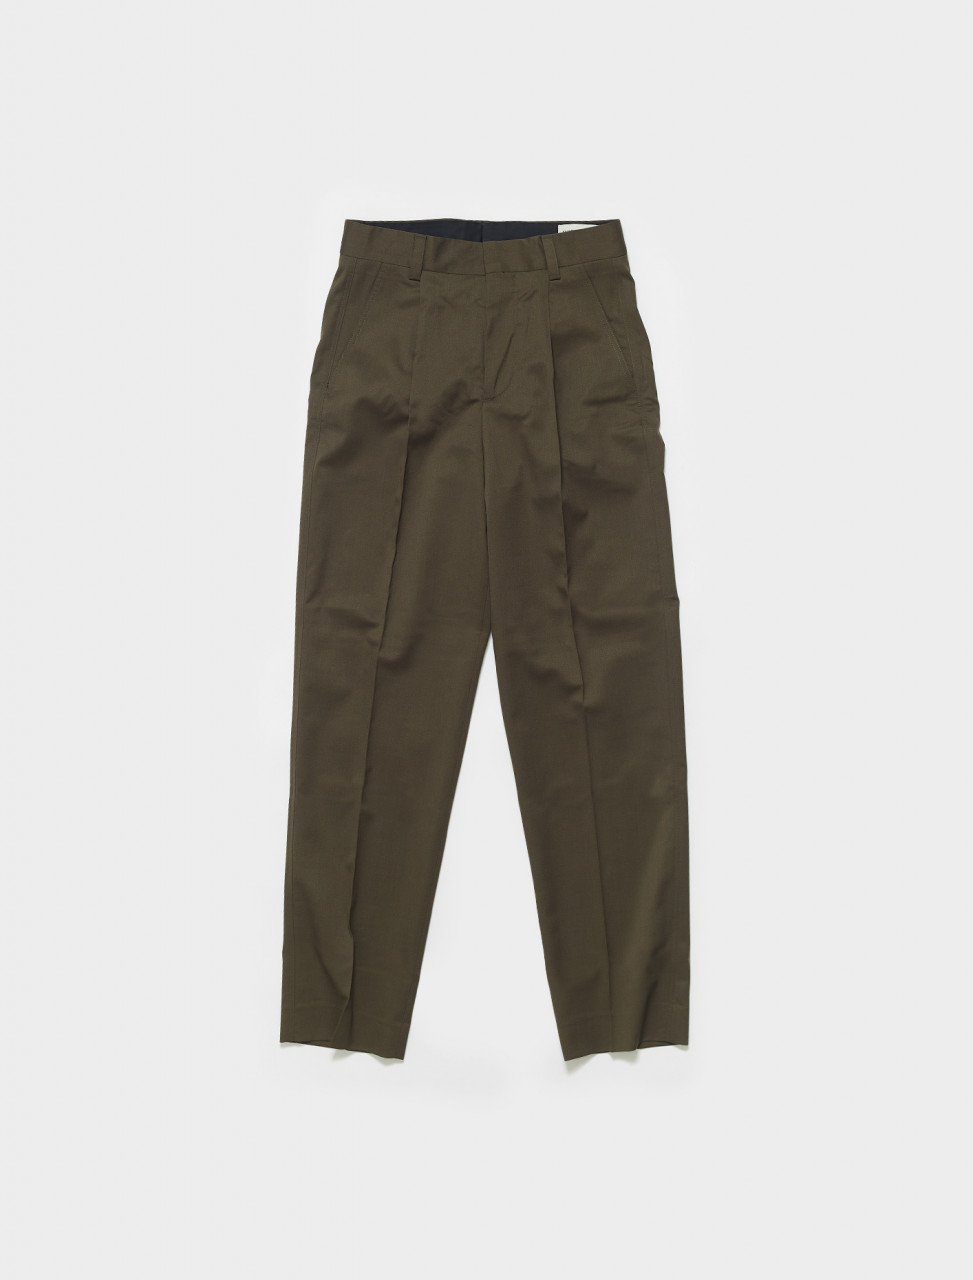 707070-700 ANOTHER ASPECT ANOTHER PANTS 1.0 DARK OLIVE GREEN